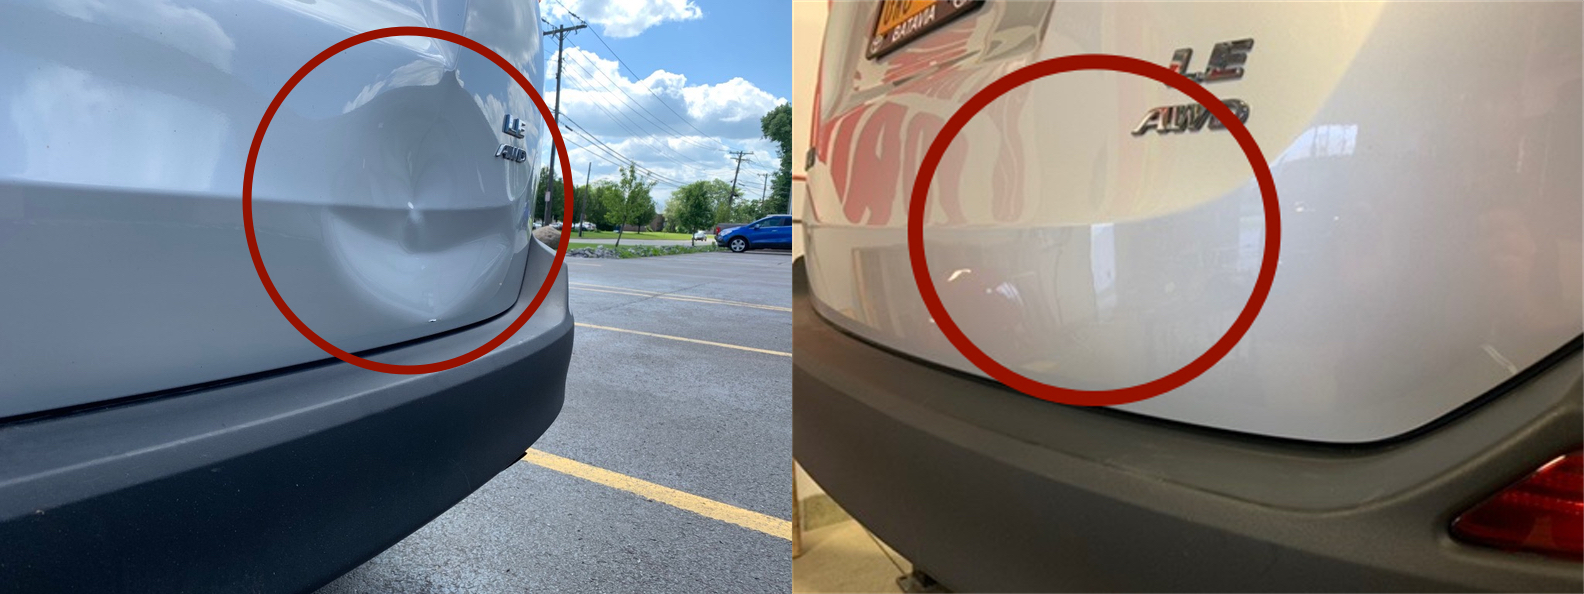 BEFORE & AFTER: EXTREMELY LARGE DENT IN RAV4 HATCH BACK PANEL & BODY LINE; DAMAGE REMOVAL & REPAIR DONE WITH PDR BY THE DENT GUY